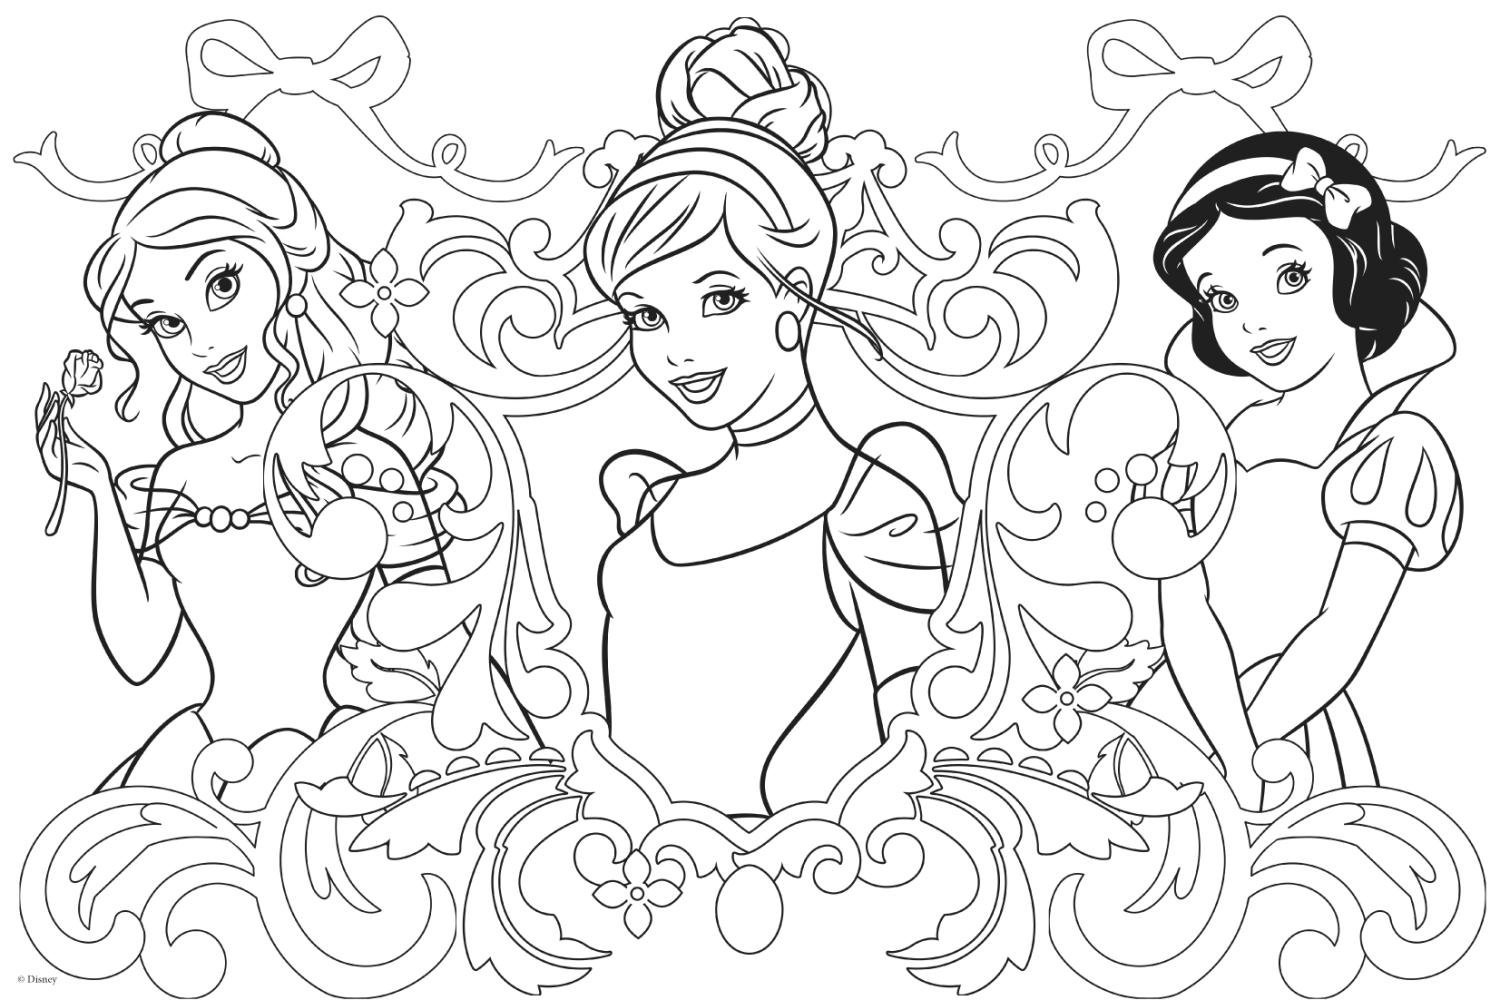 Disegni da colorare principesse disney ariel for Principesse disney da colorare